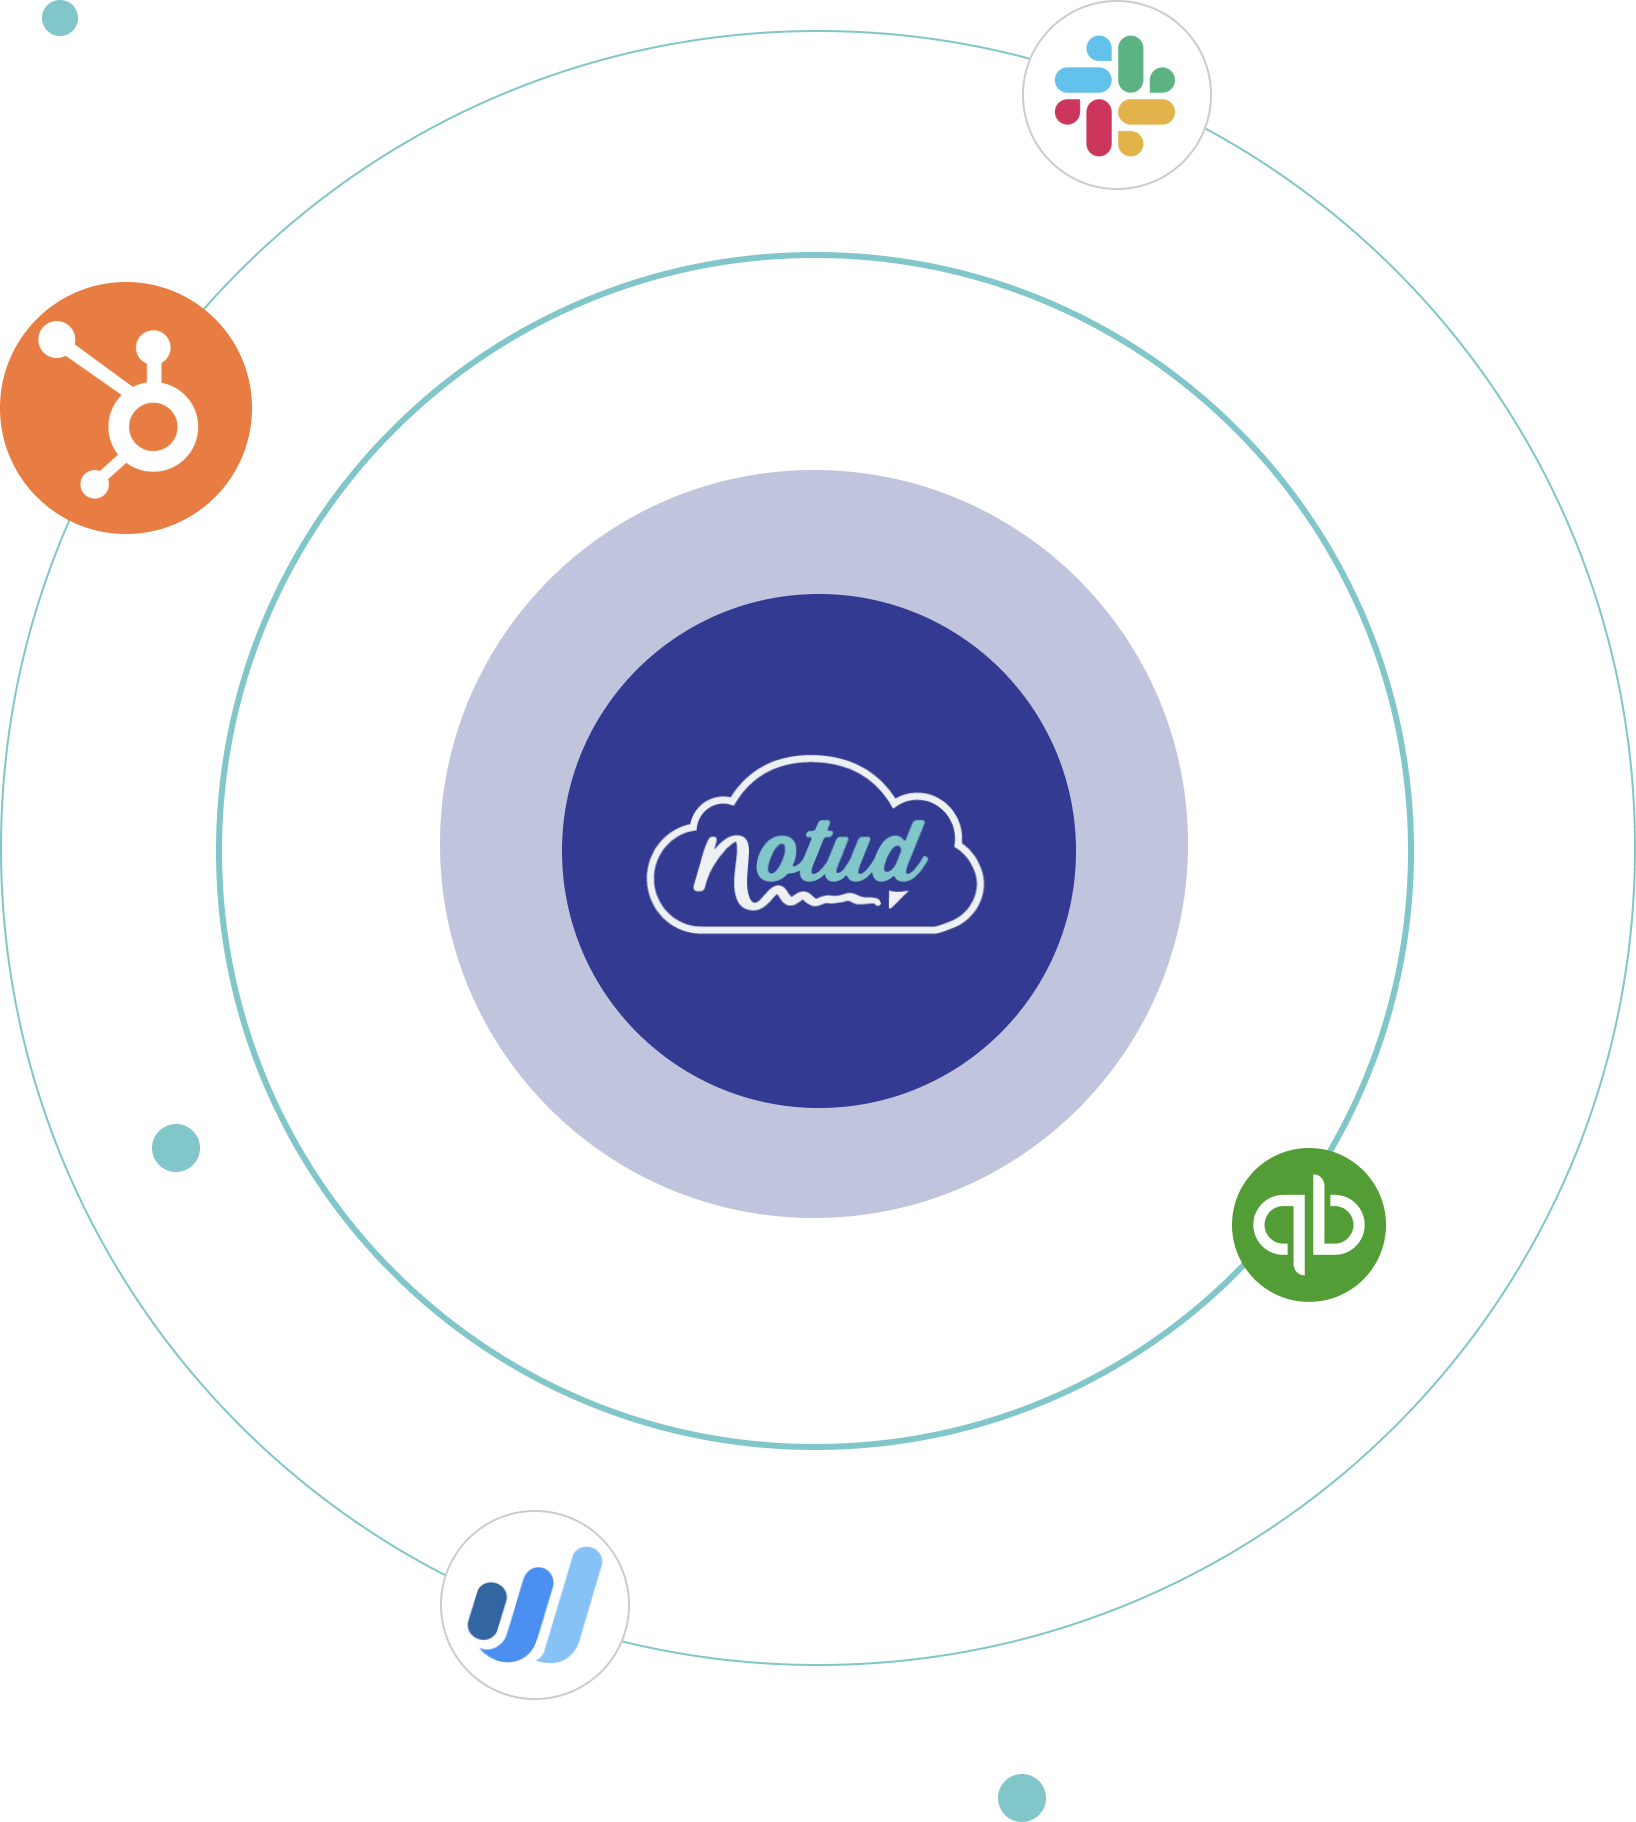 Noted integrates with HubSpot, Quickbooks, Slack, and Wave via Zapier